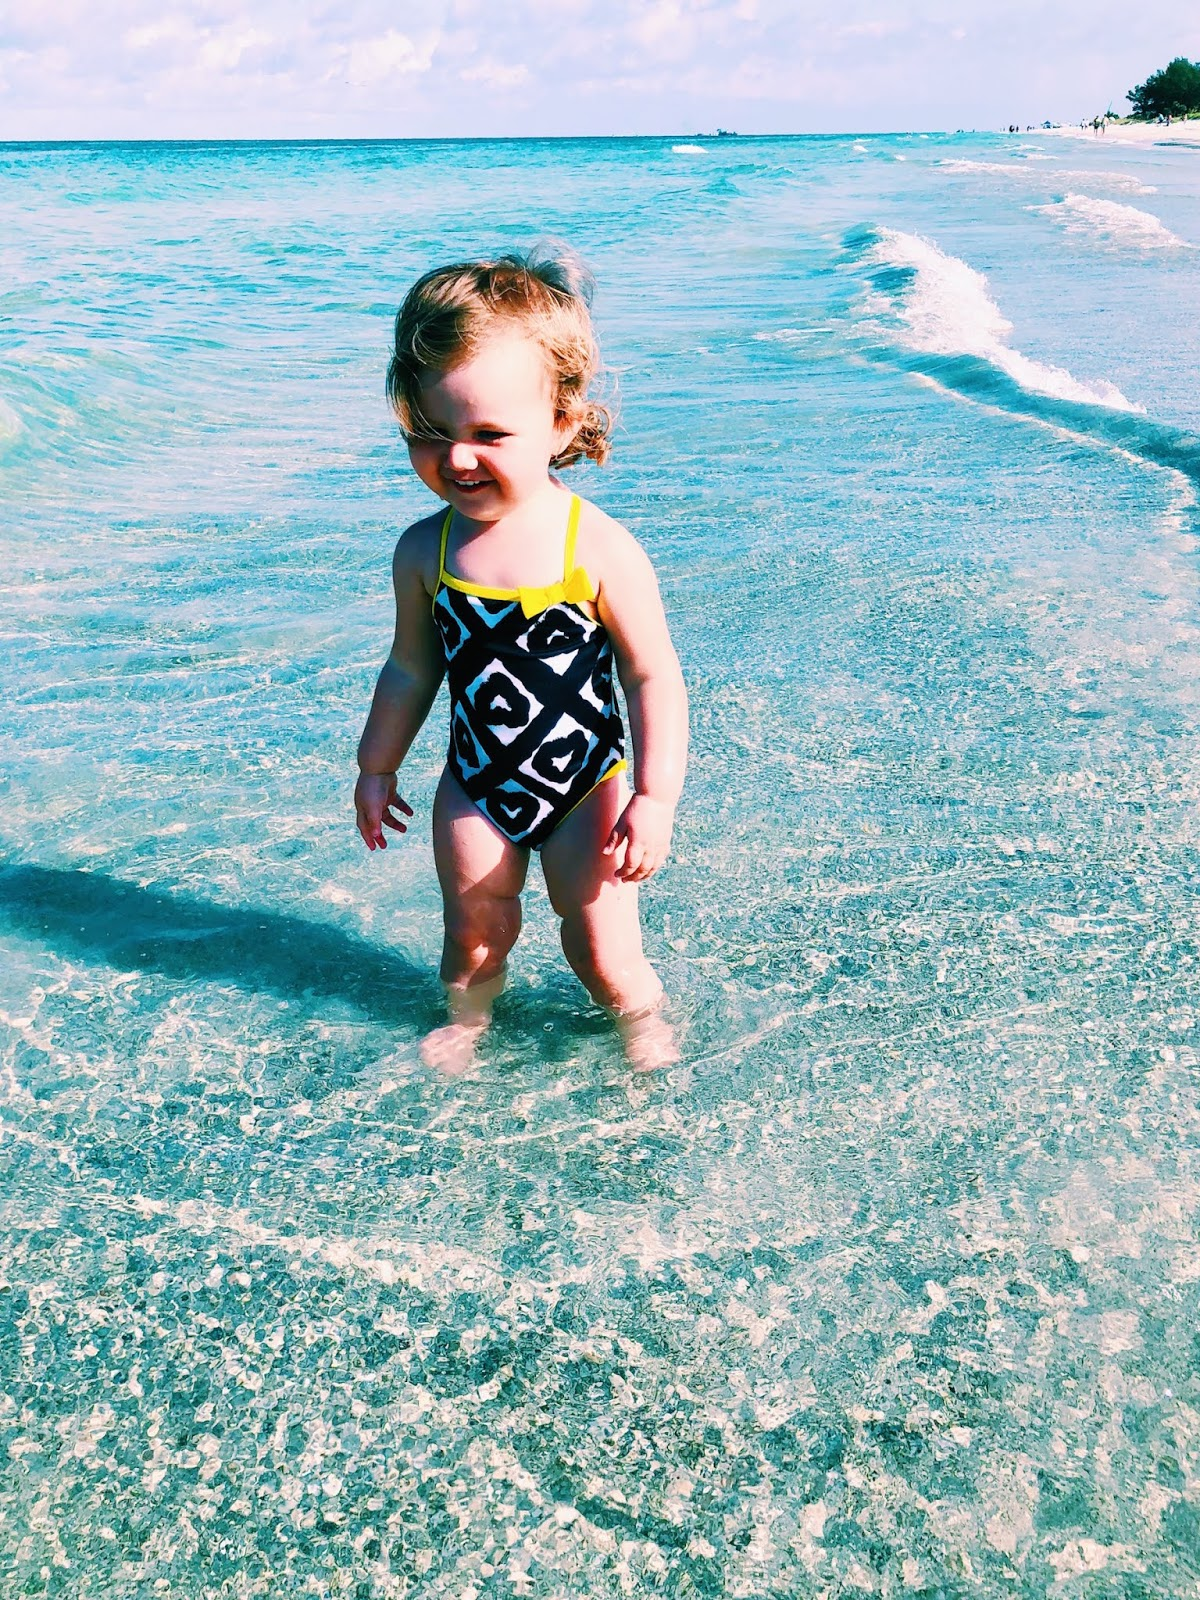 Our Family Vacation to Indian Shores, Florida